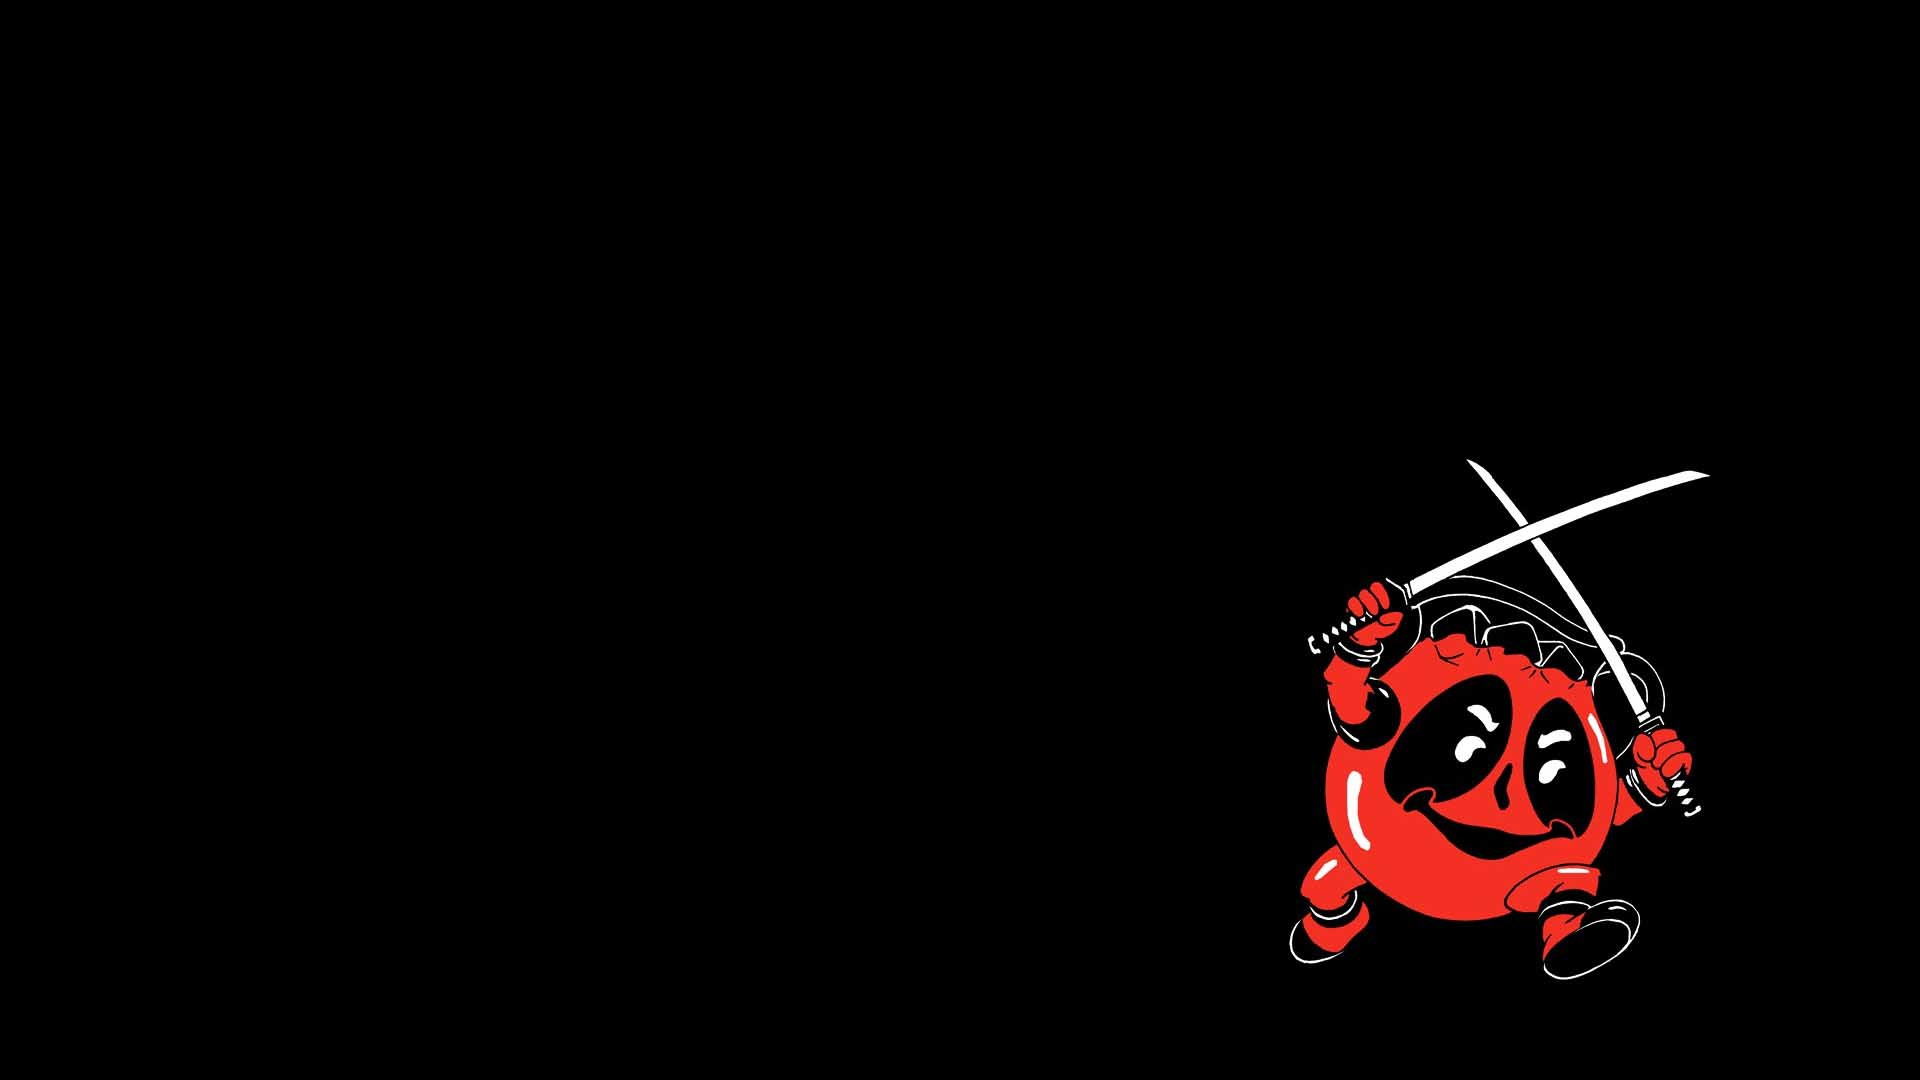 1920x1080 Cool Deadpool Fun Wallpapers HD.